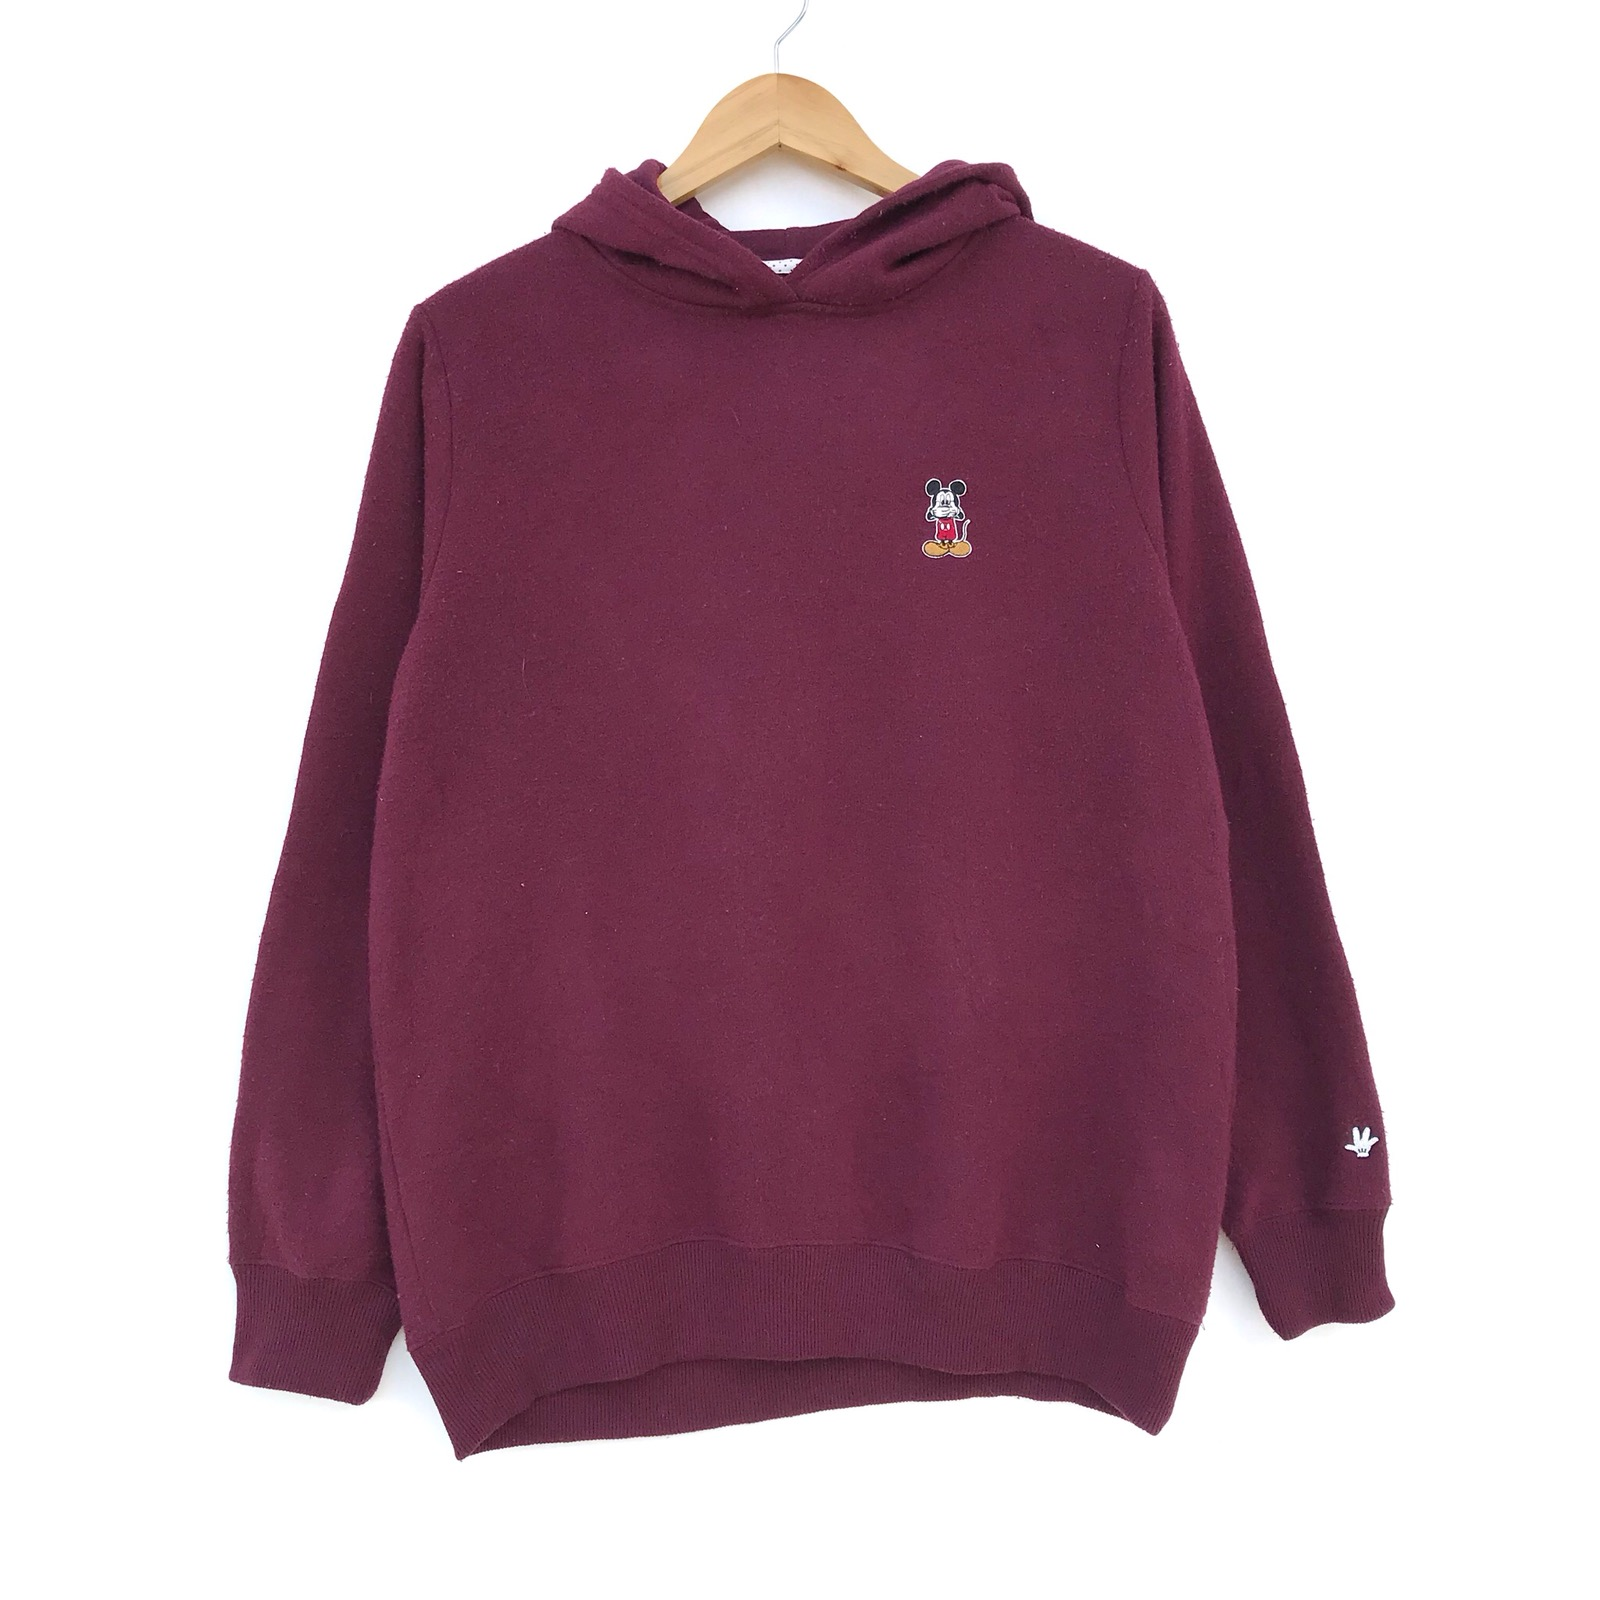 2dca336908e6a9 Vintage Last Drop Before Remove🔥🔥🔥 Rare! Mickey Mouse Hoodies Sweatshirt  Hypebeast Hiphop Hipster Swagger Size m - Sweatshirts   Hoodies for Sale -  ...